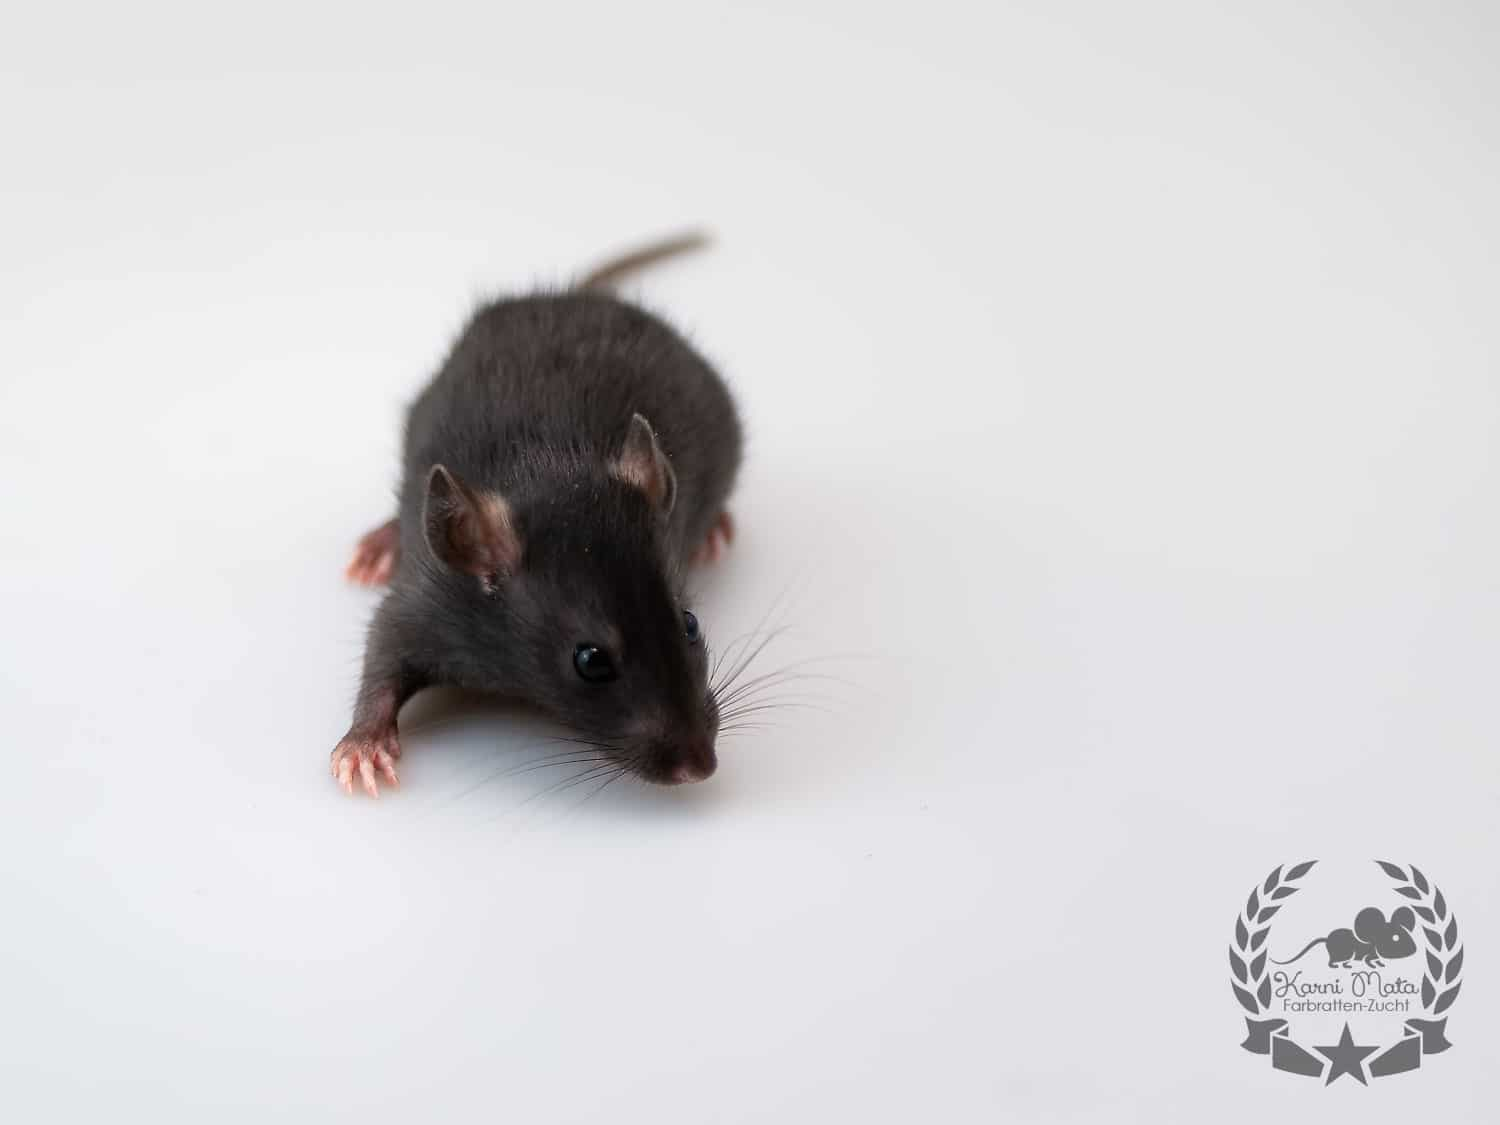 Tamiyo KM L4 f 07, Farbratte (Fancyrat) Black Self